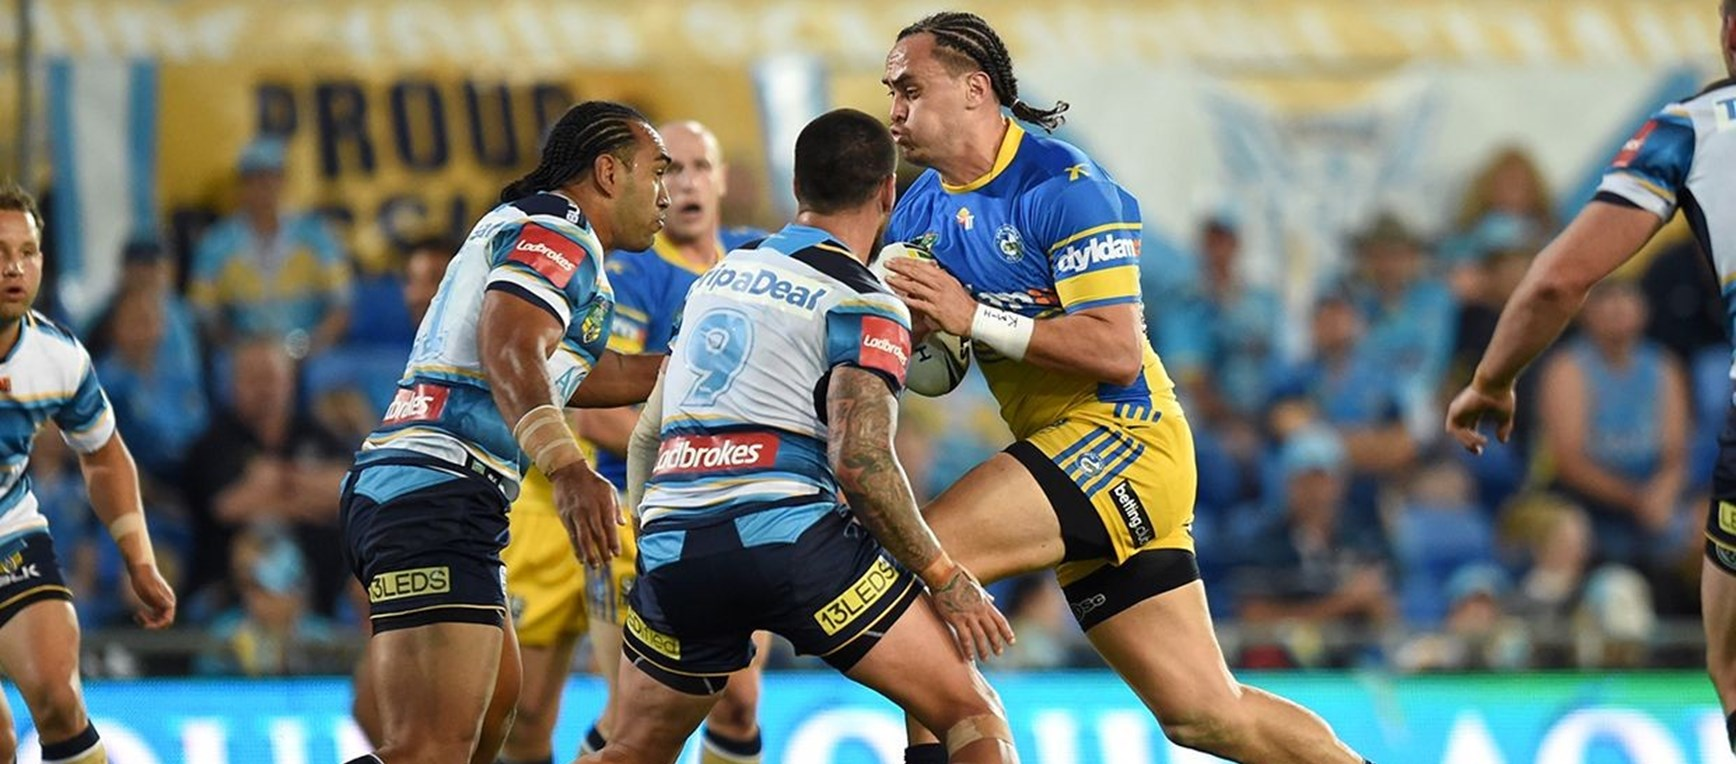 GALLERY | Eels v Titans, Round 20